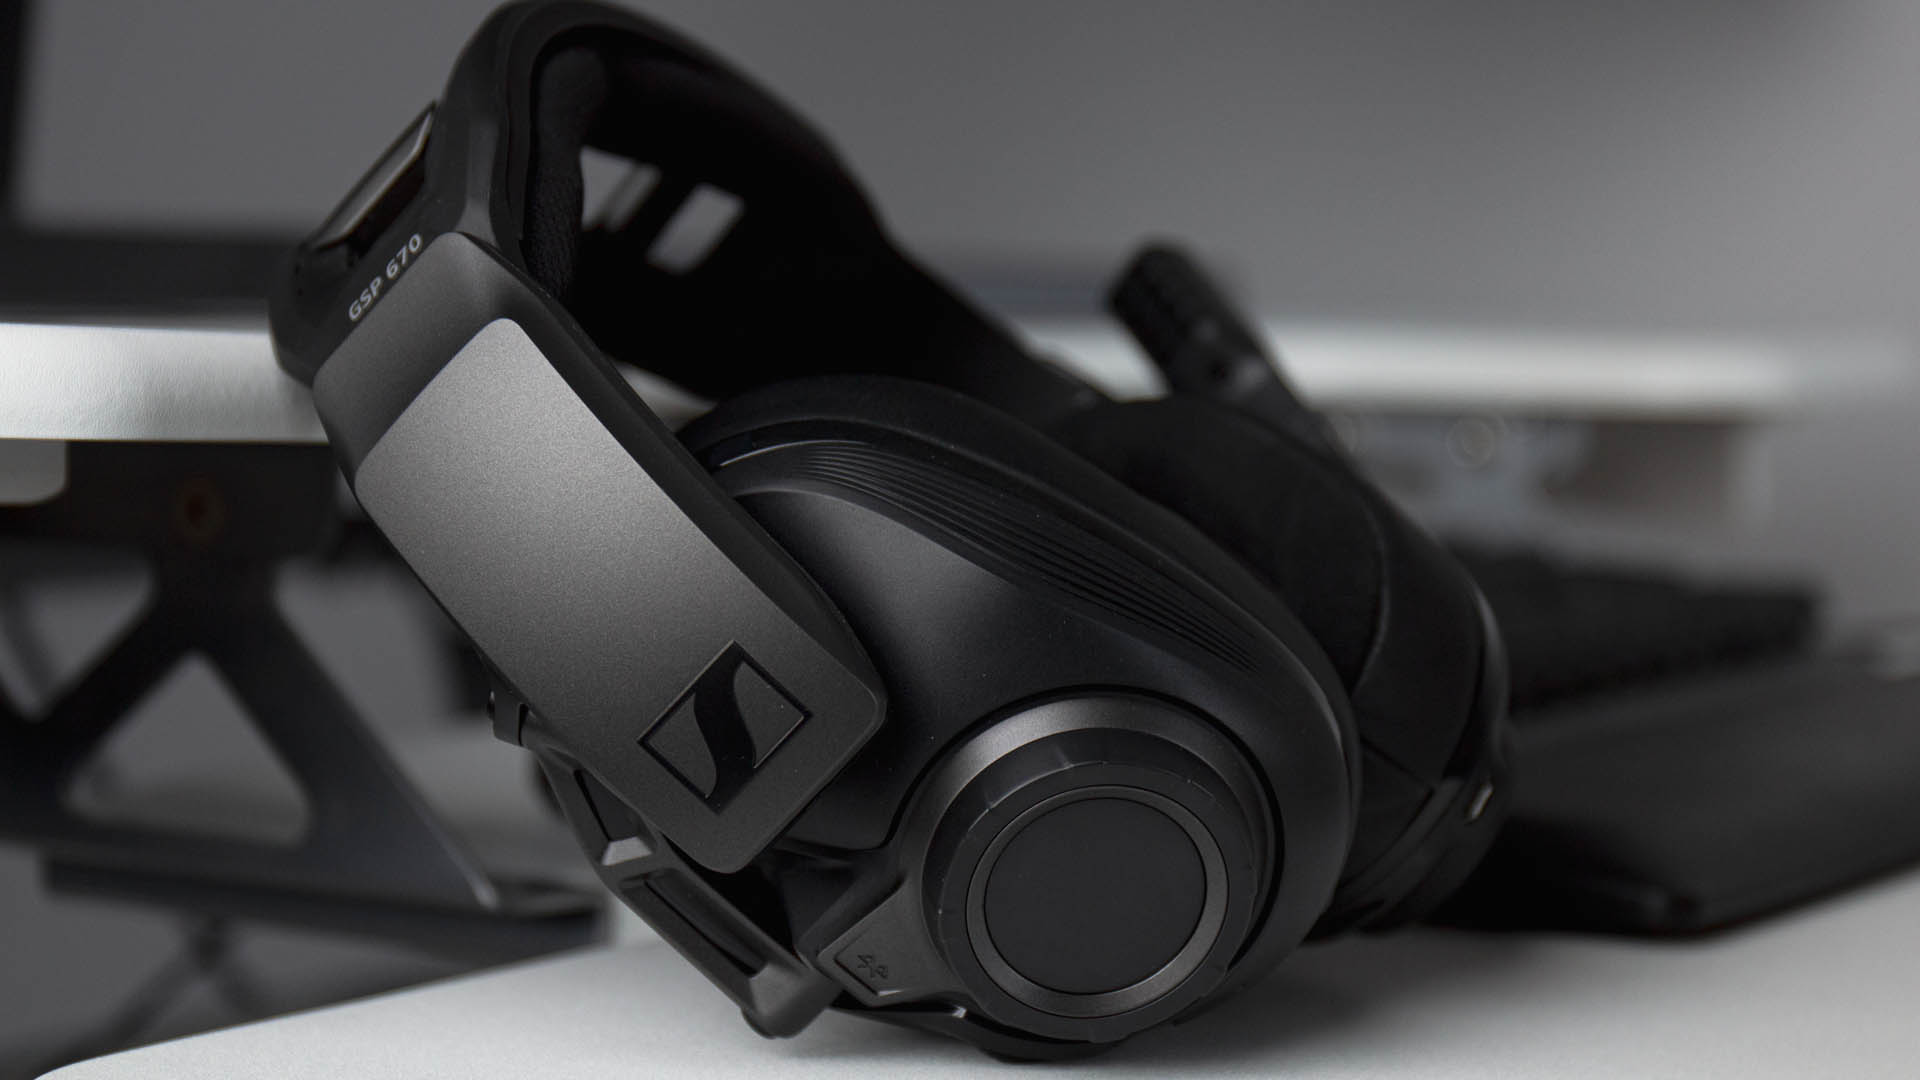 Sennheiser GSP 670 gaming headset review: first-rate audio meets premium wireless